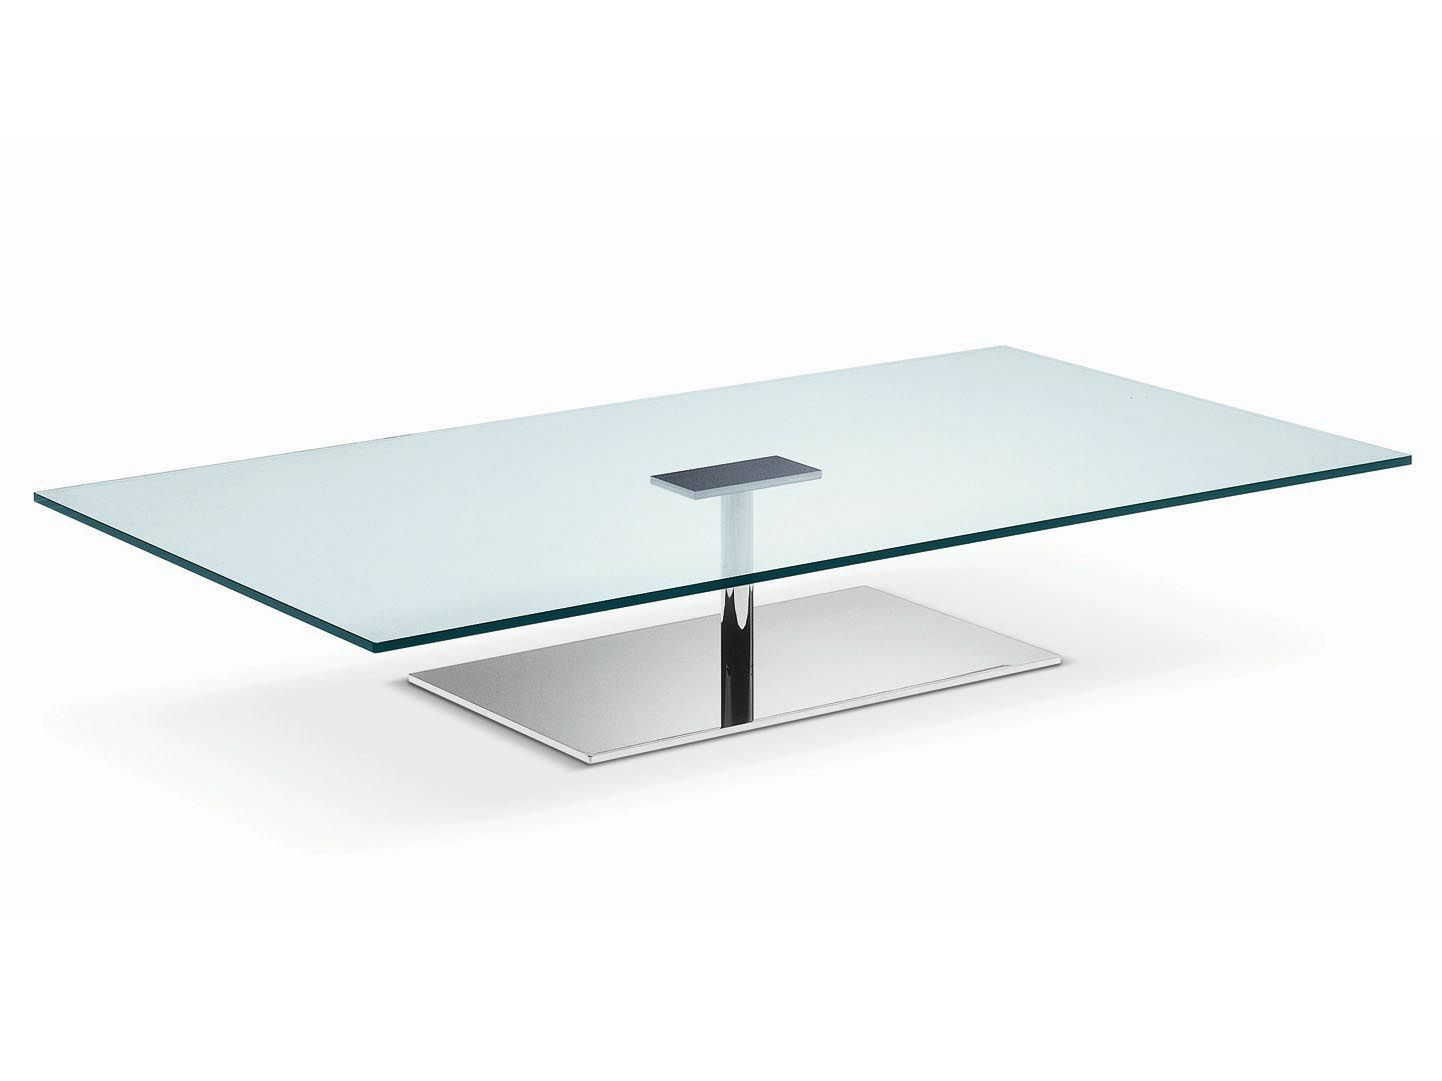 Creative Minimalist Small Oval Coffee Table For Living Room Small Oval Coffee Table Walm Glass Top Coffee Table Coffee Table Walmart Round Coffee Table Sets [ 1206 x 1784 Pixel ]